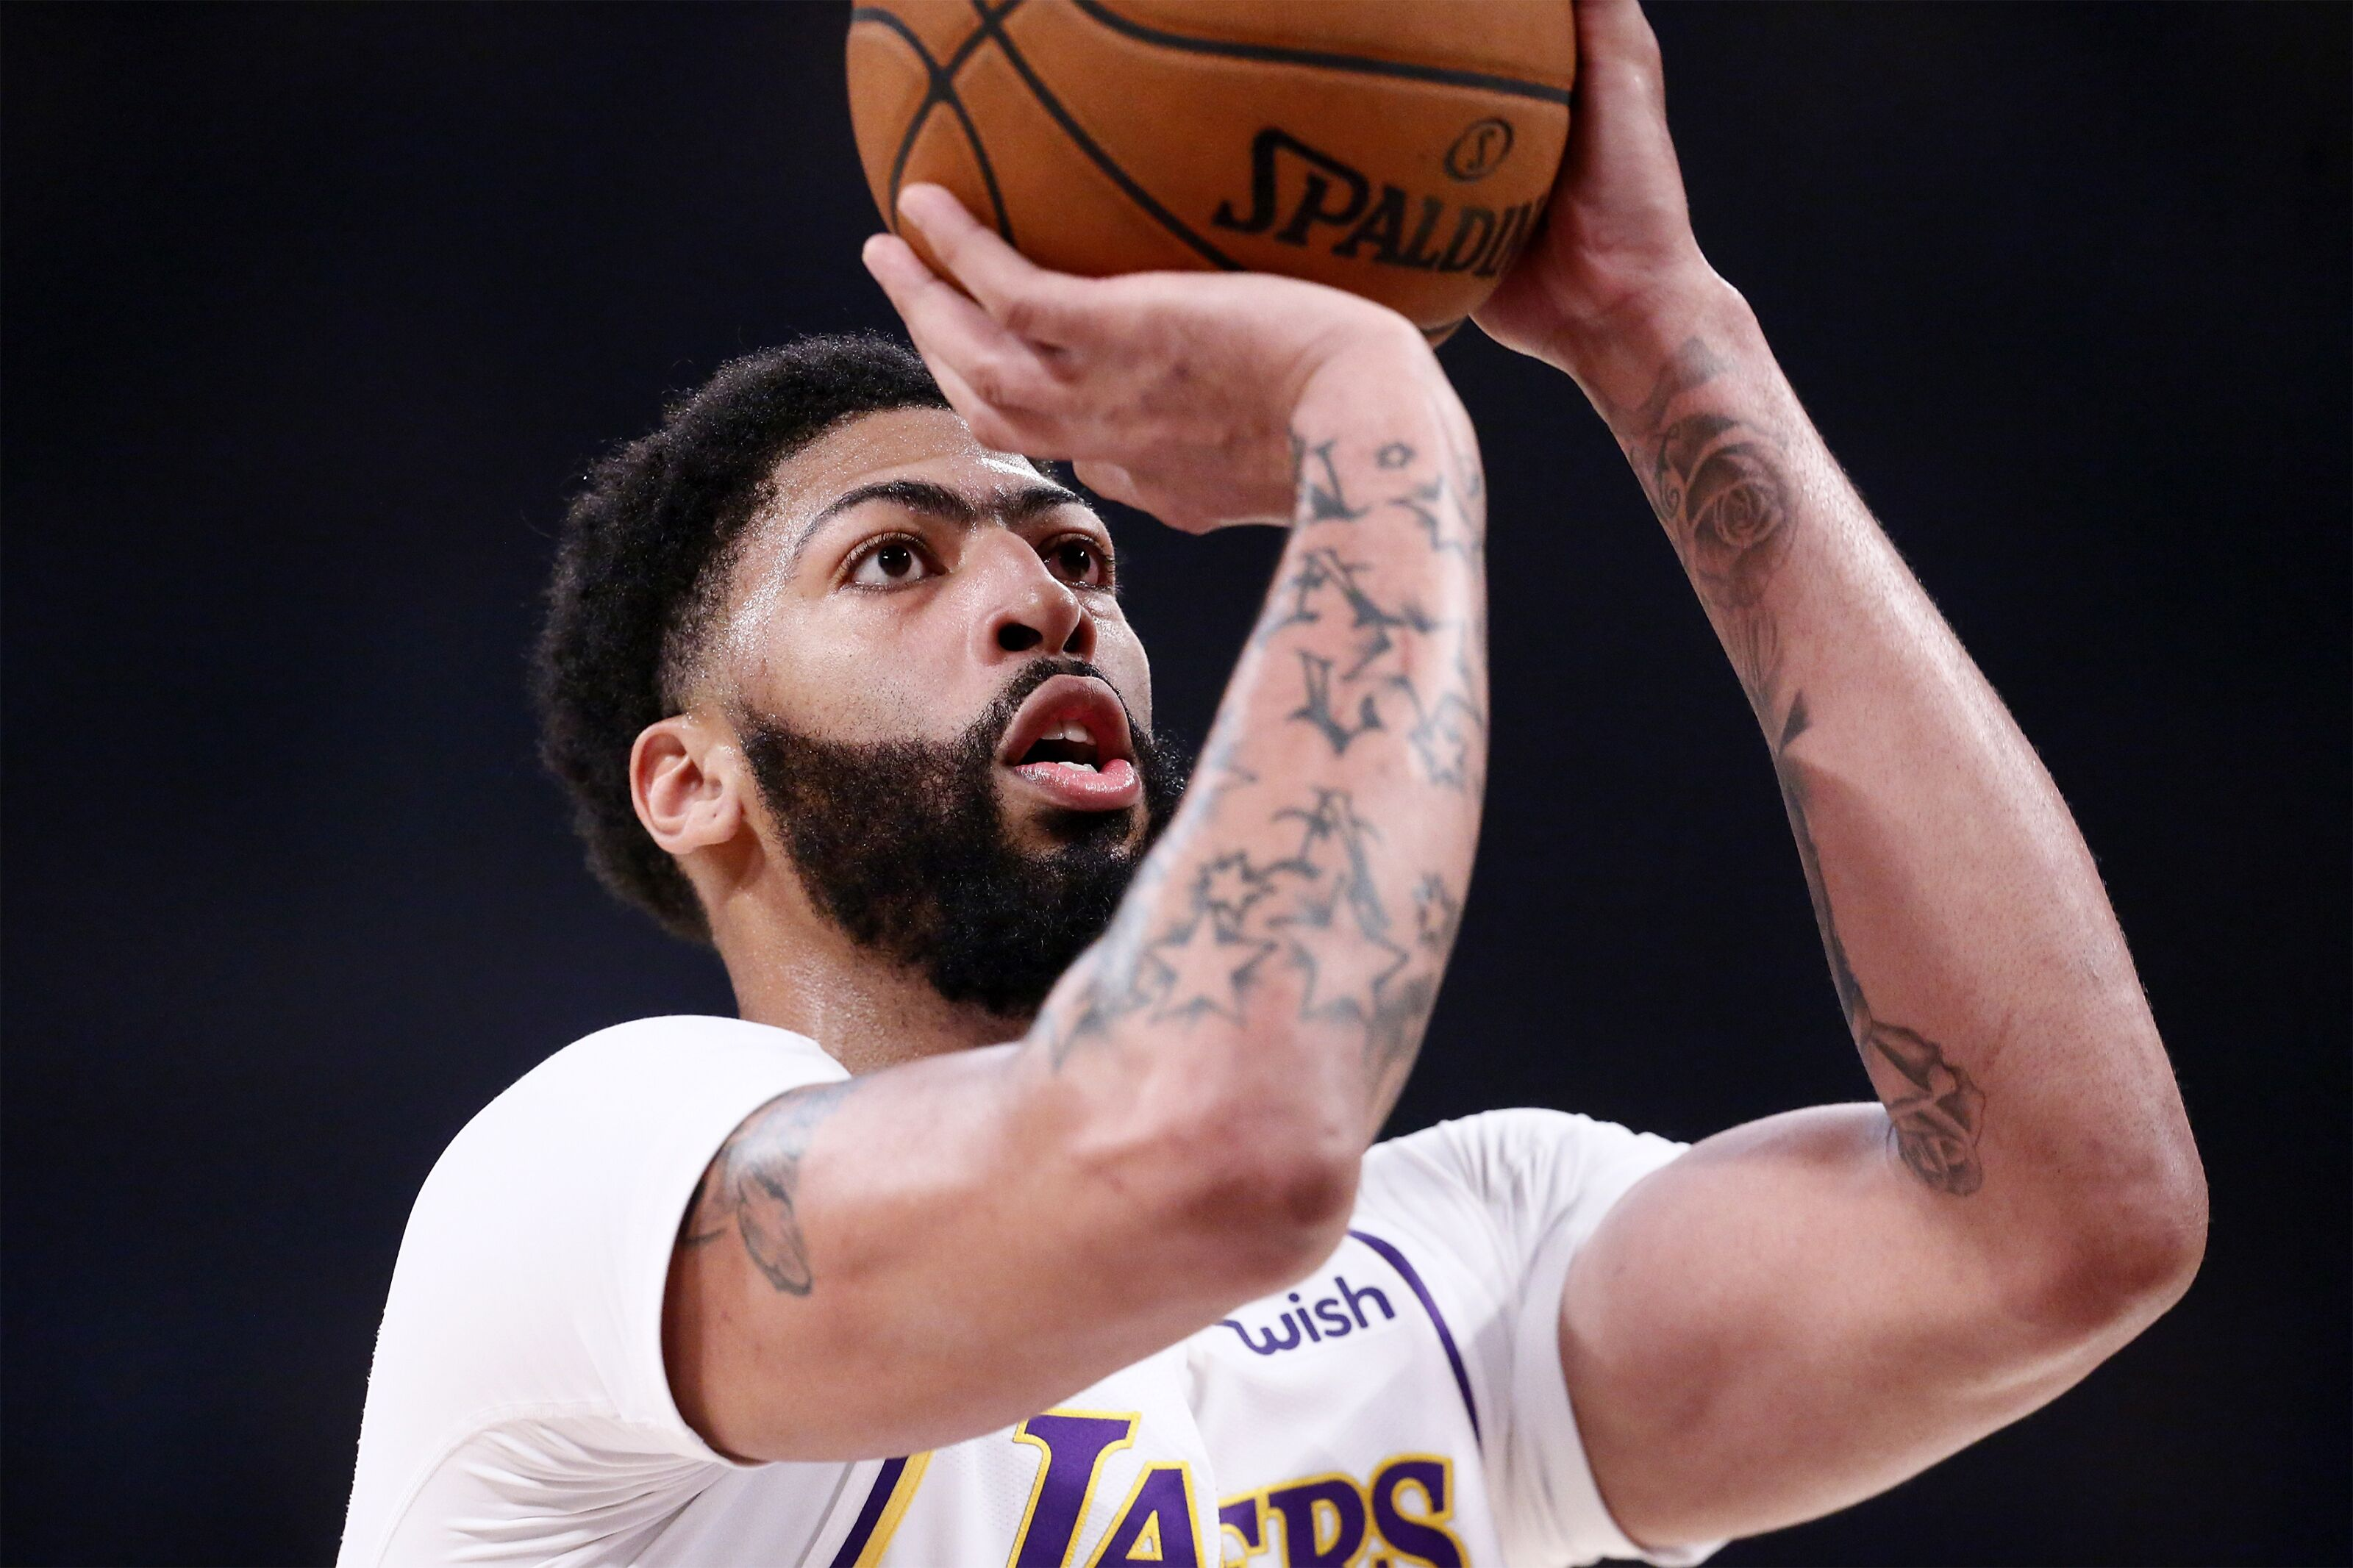 Los Angeles Lakers Anthony Davis Discusses Sustaining Big Leads